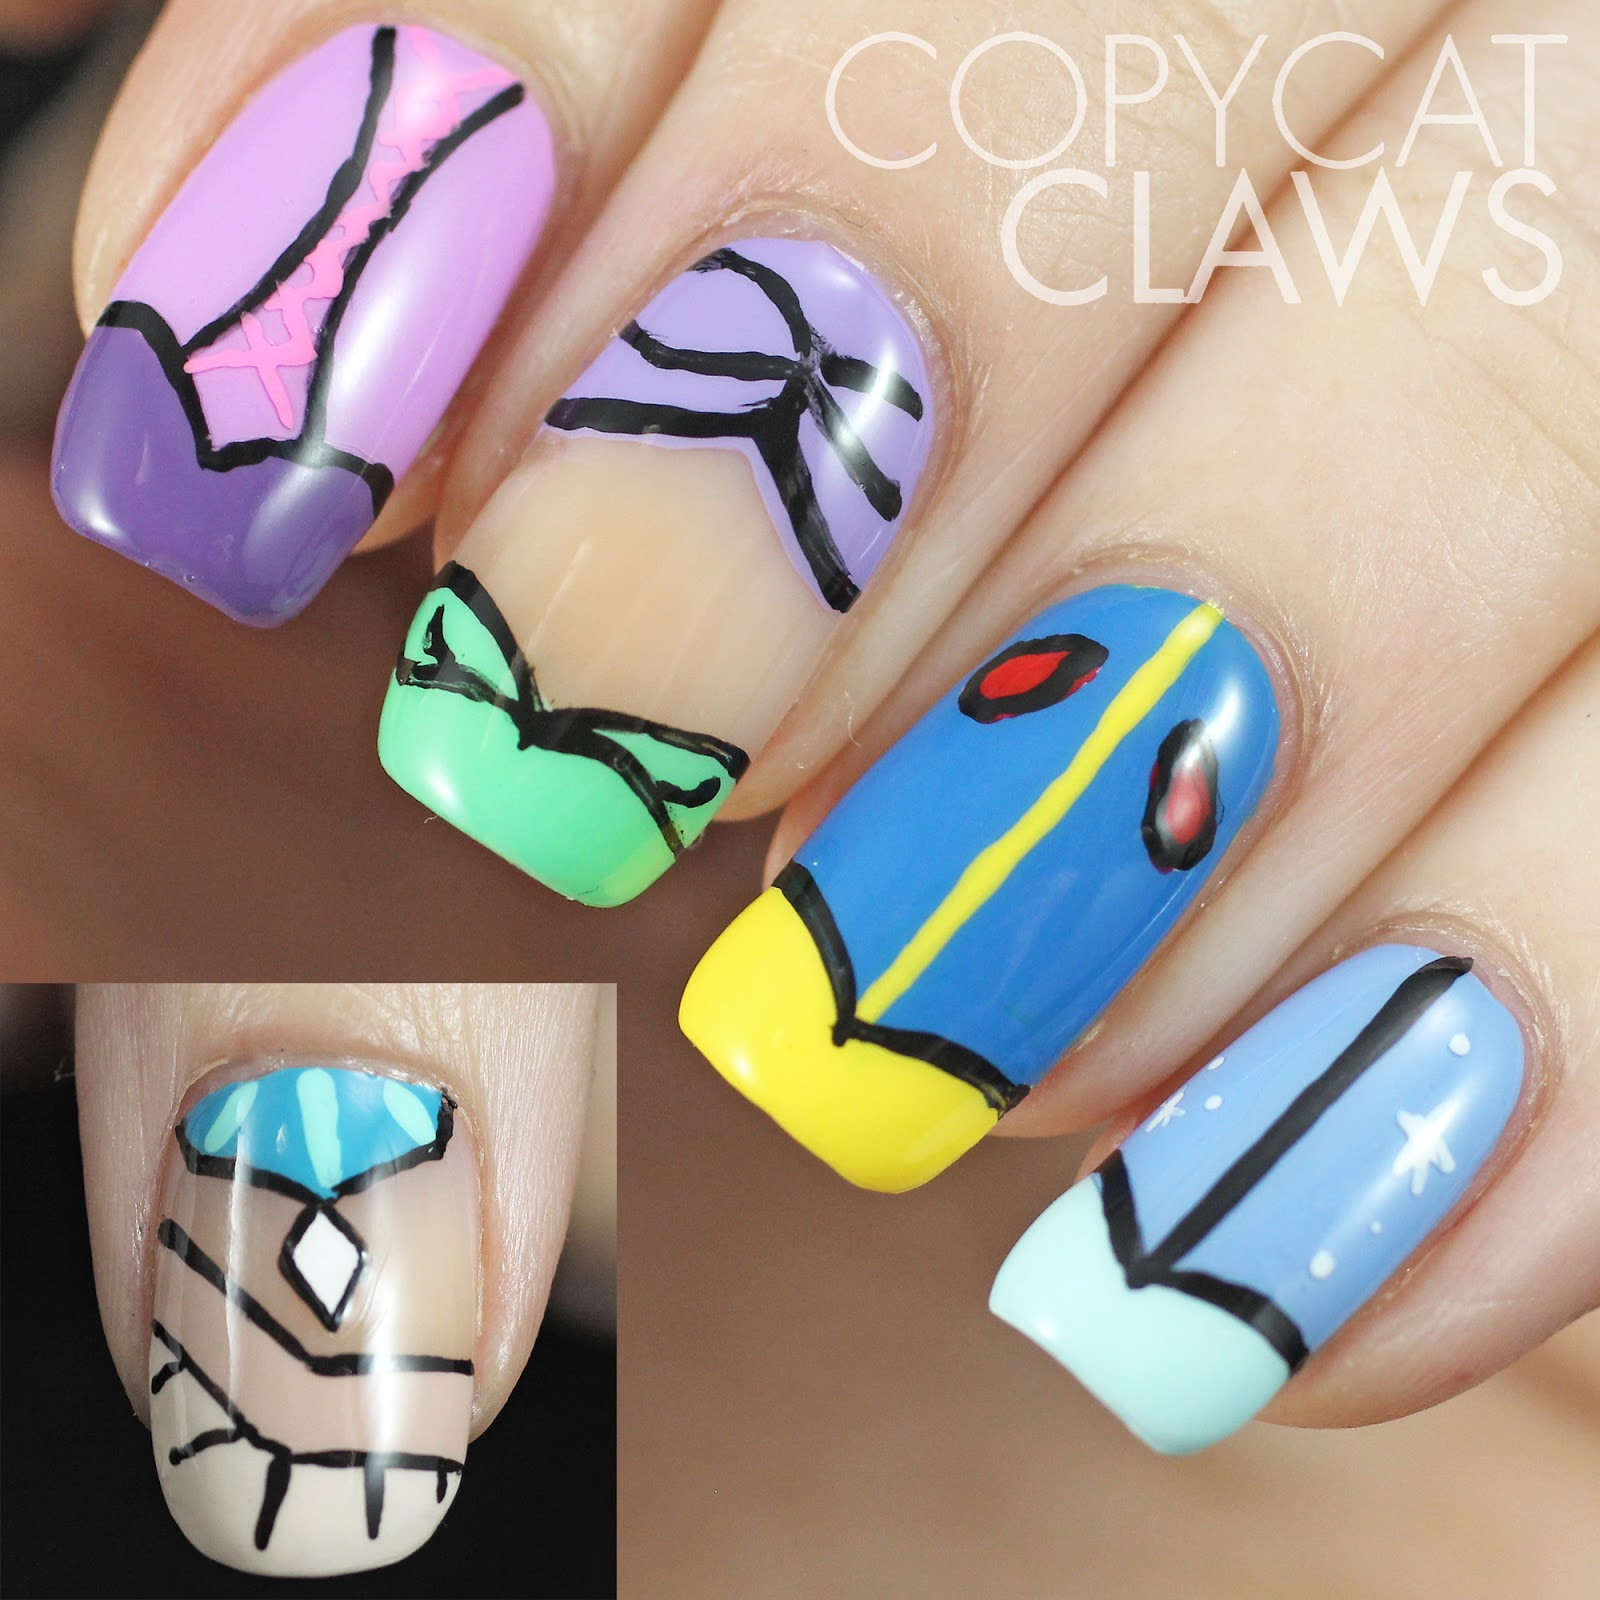 Princess Nail Art: Copycat Claws: The Digit-al Dozen Does Fairy Tales: Day 2